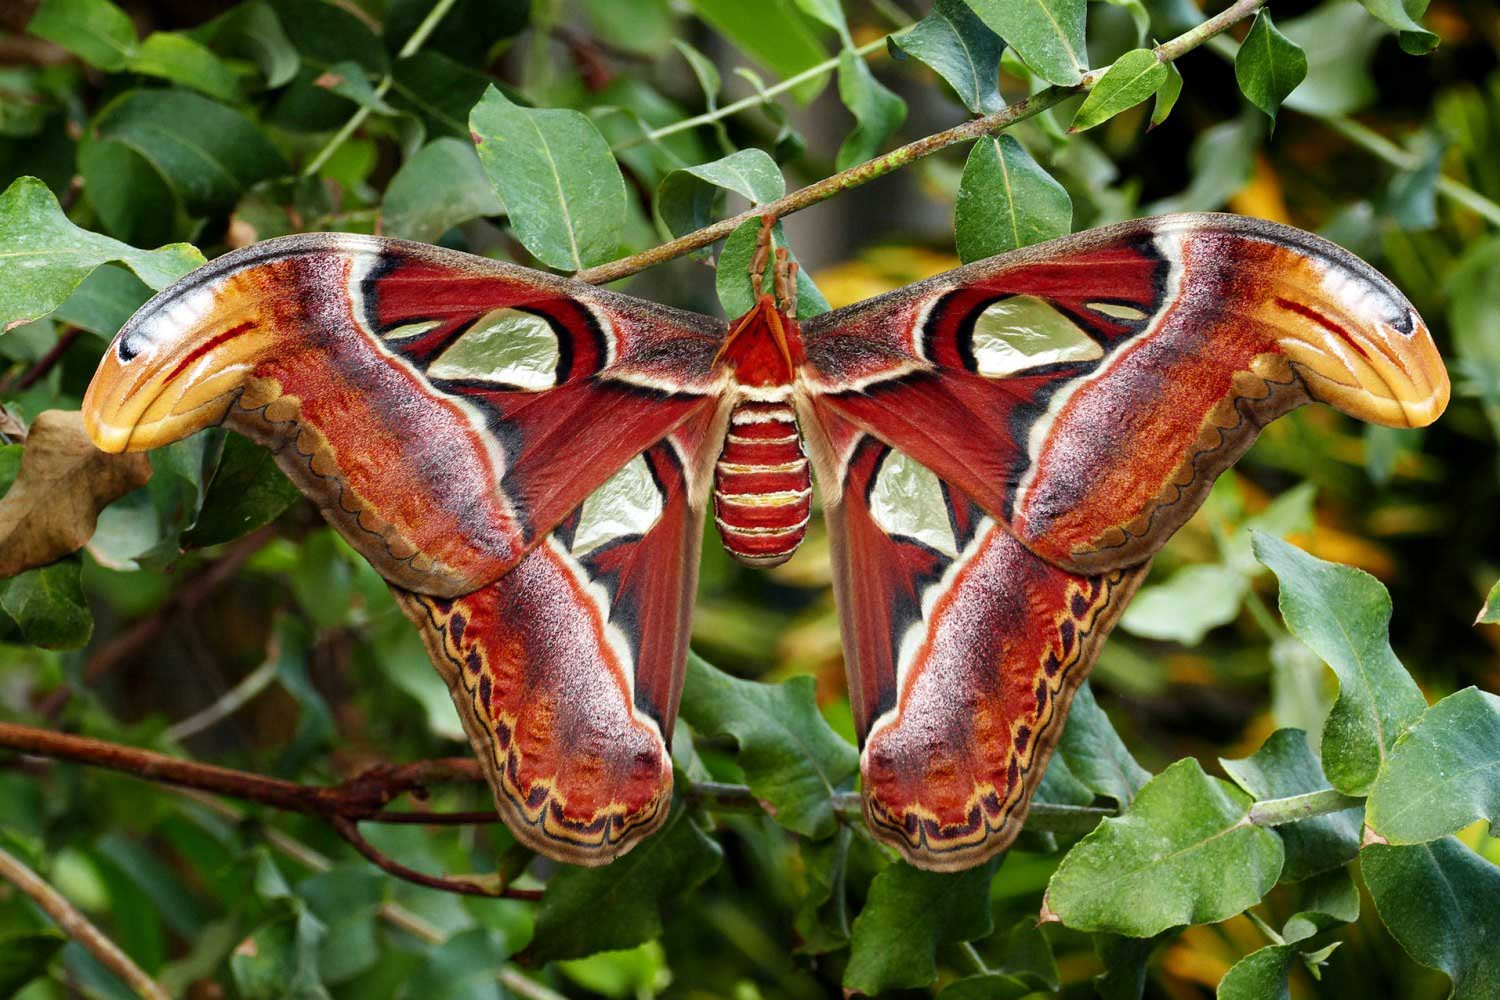 Atlas moth - Khao national forest